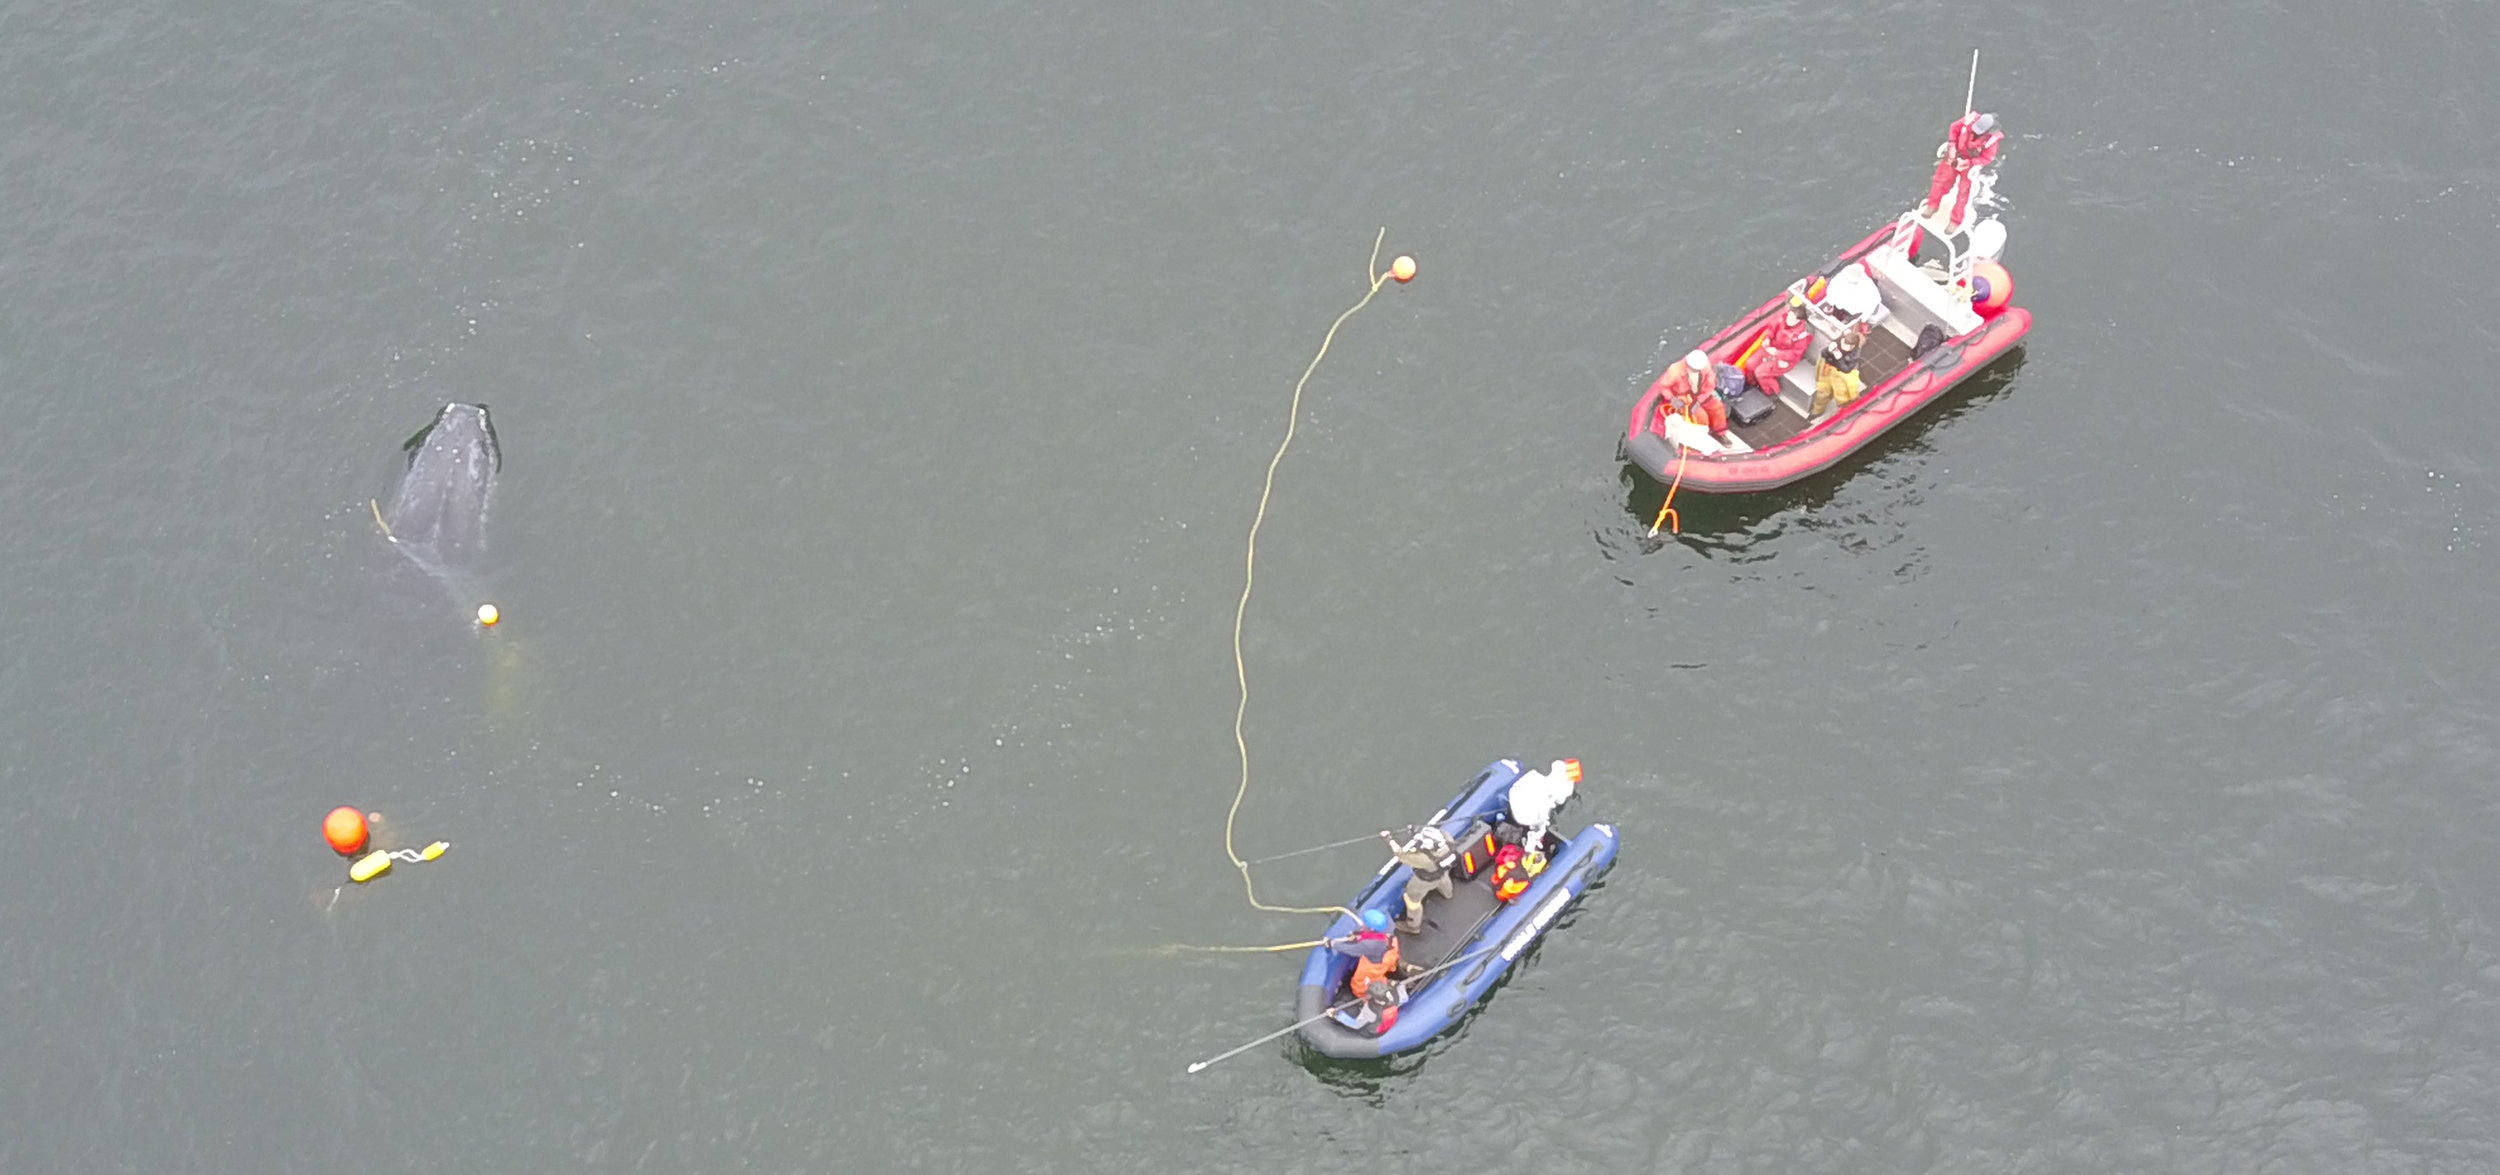 In this aerial photo taken by a drone, disentanglement teams work to free a 25-foot long humpback whale entangled in fishing gear. The whale is visible on the left and the crew in the blue boat is attempting to access the lines to cut the whale free. Photo credit: Ben Lester/NOAA Fisheries, taken under NOAA Fisheries MMHSRP Permit# 18786-01